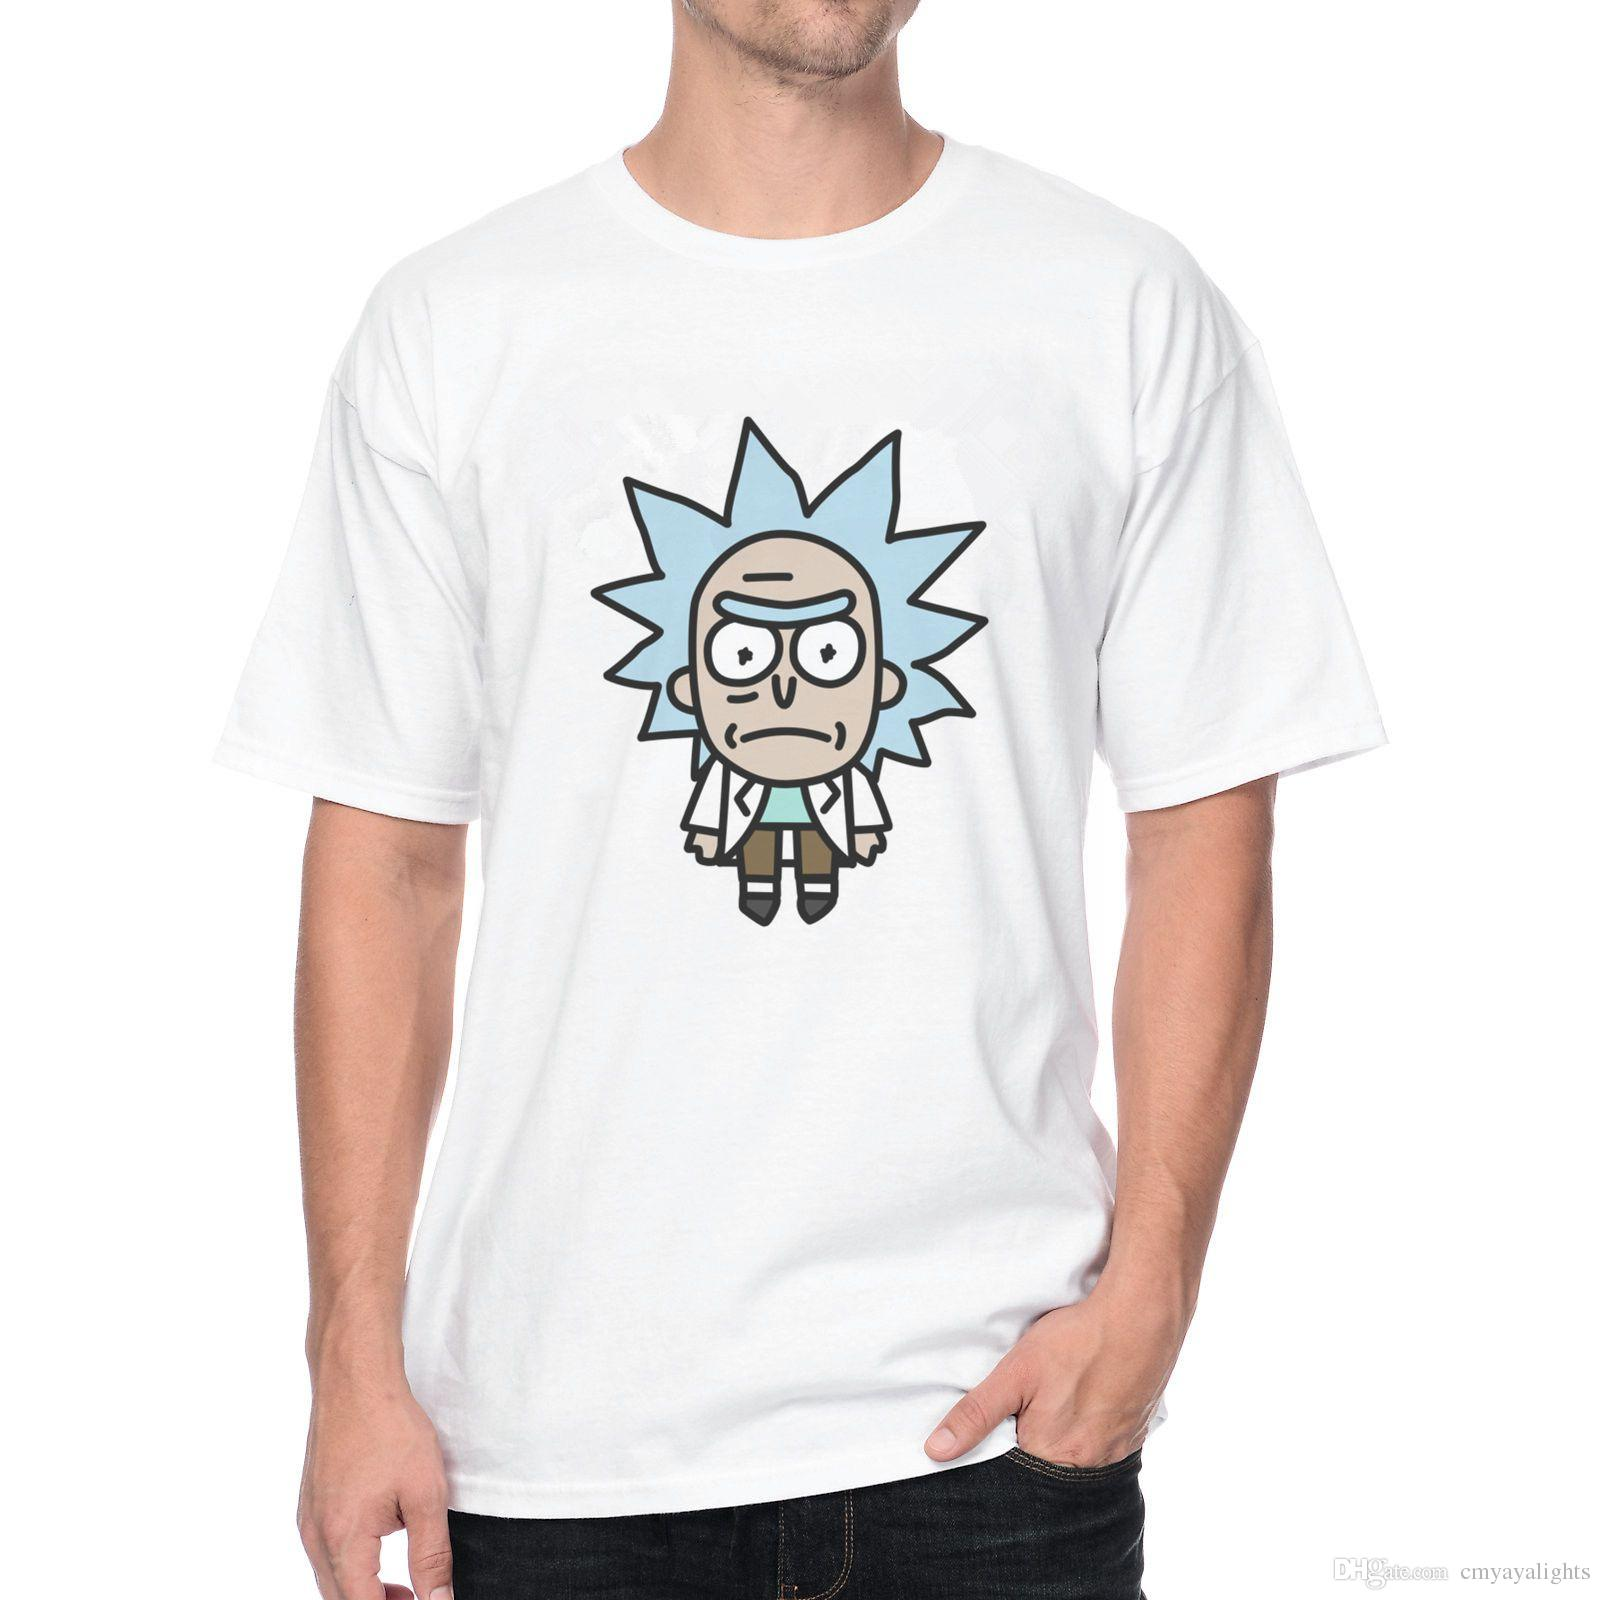 Design t shirt europe - Pocket Rick T Shirt 1053 3d Printed Cartoon Vintage Design T Shirts Fashion Male